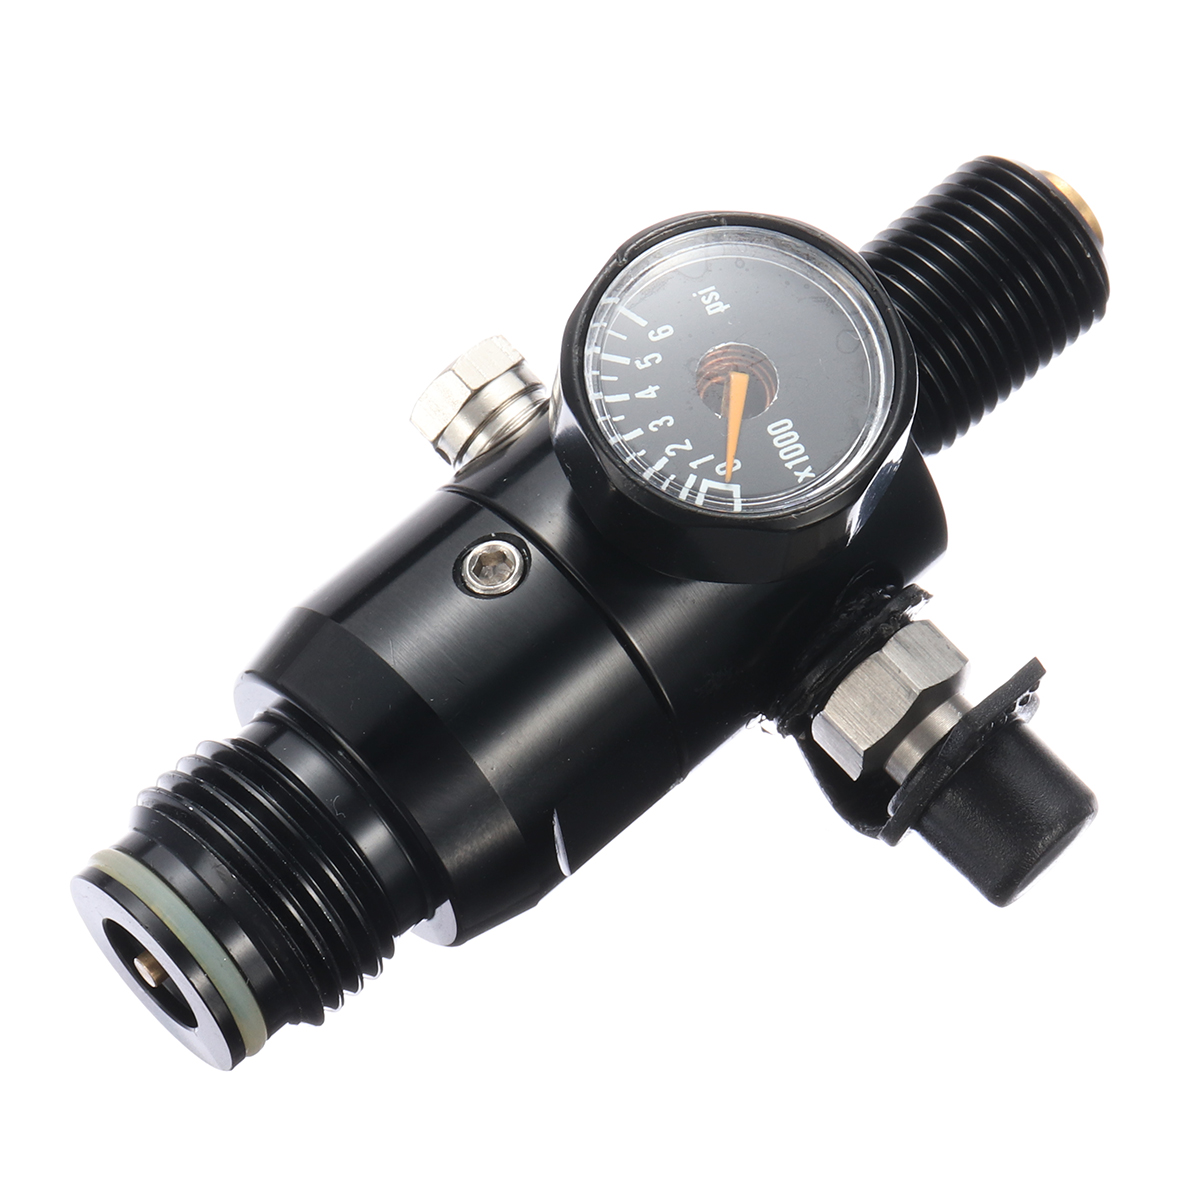 PCP Paintball Cylinder Tank 4500psi 0.5L High Compressed Air Bottle W// Regulator